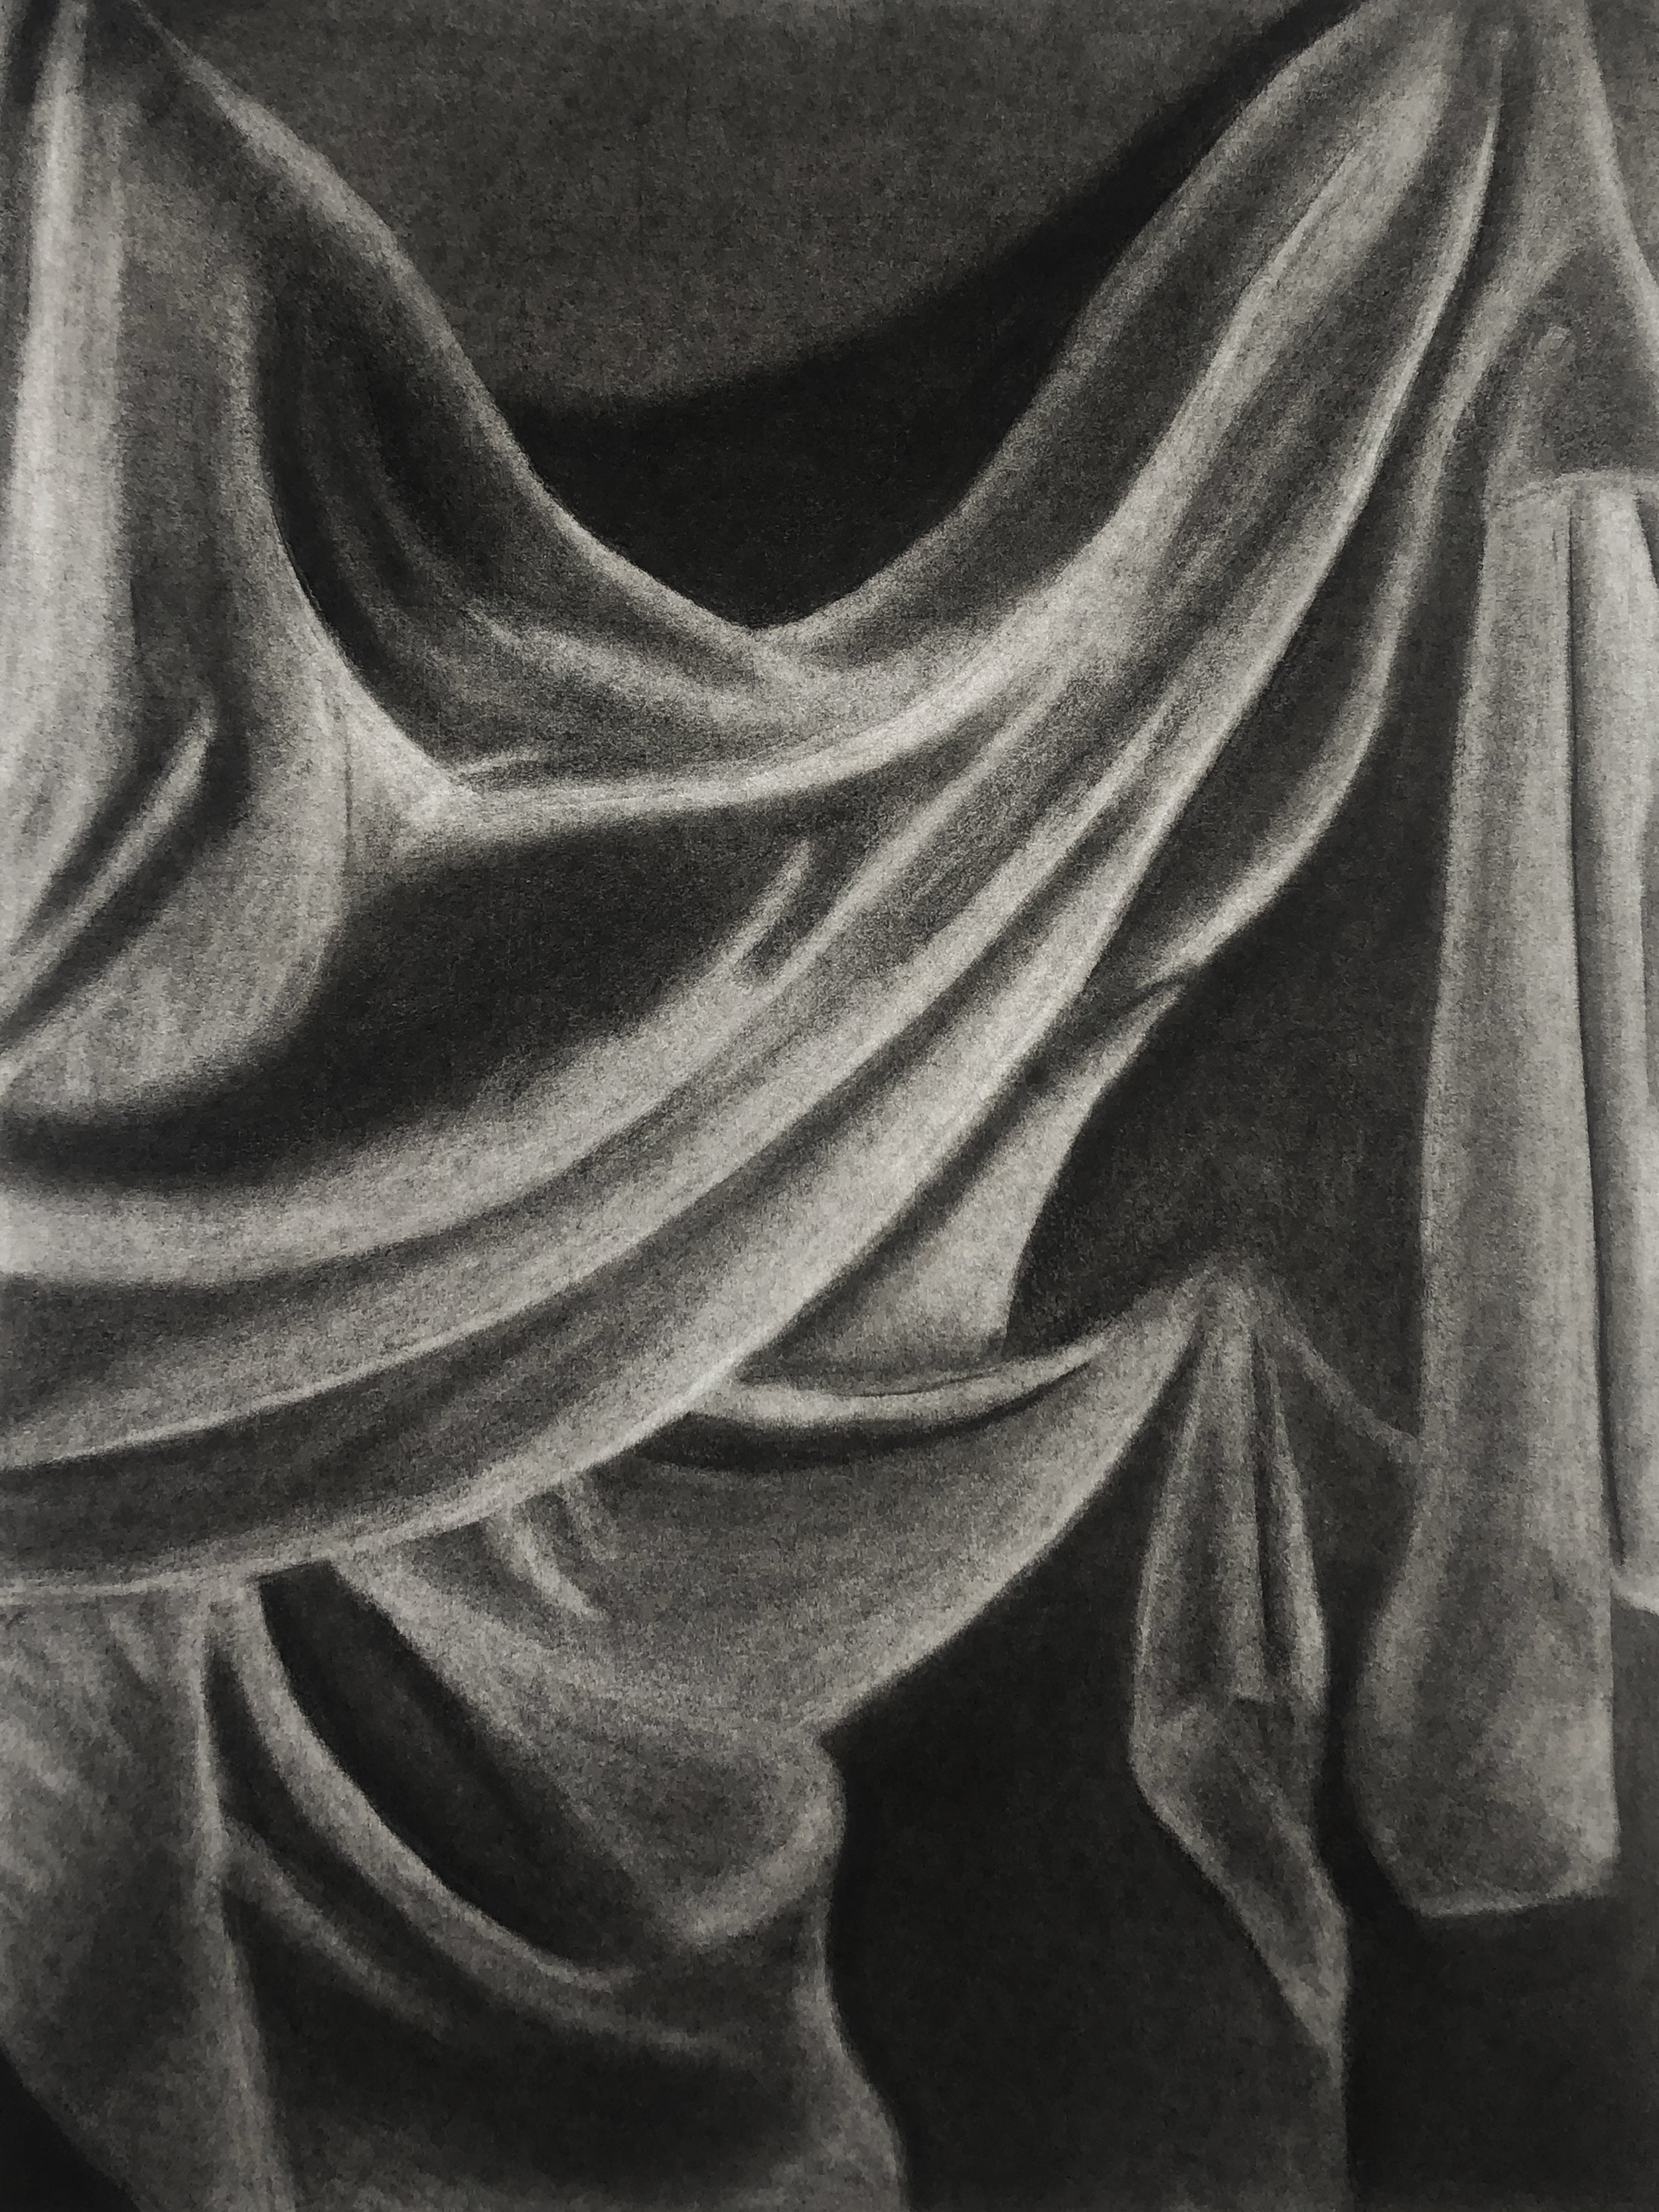 A Study of Fabric - Charcoal and ChalkThe First of several studies; this study was done in an effort to practice composition, shading, and contrast.